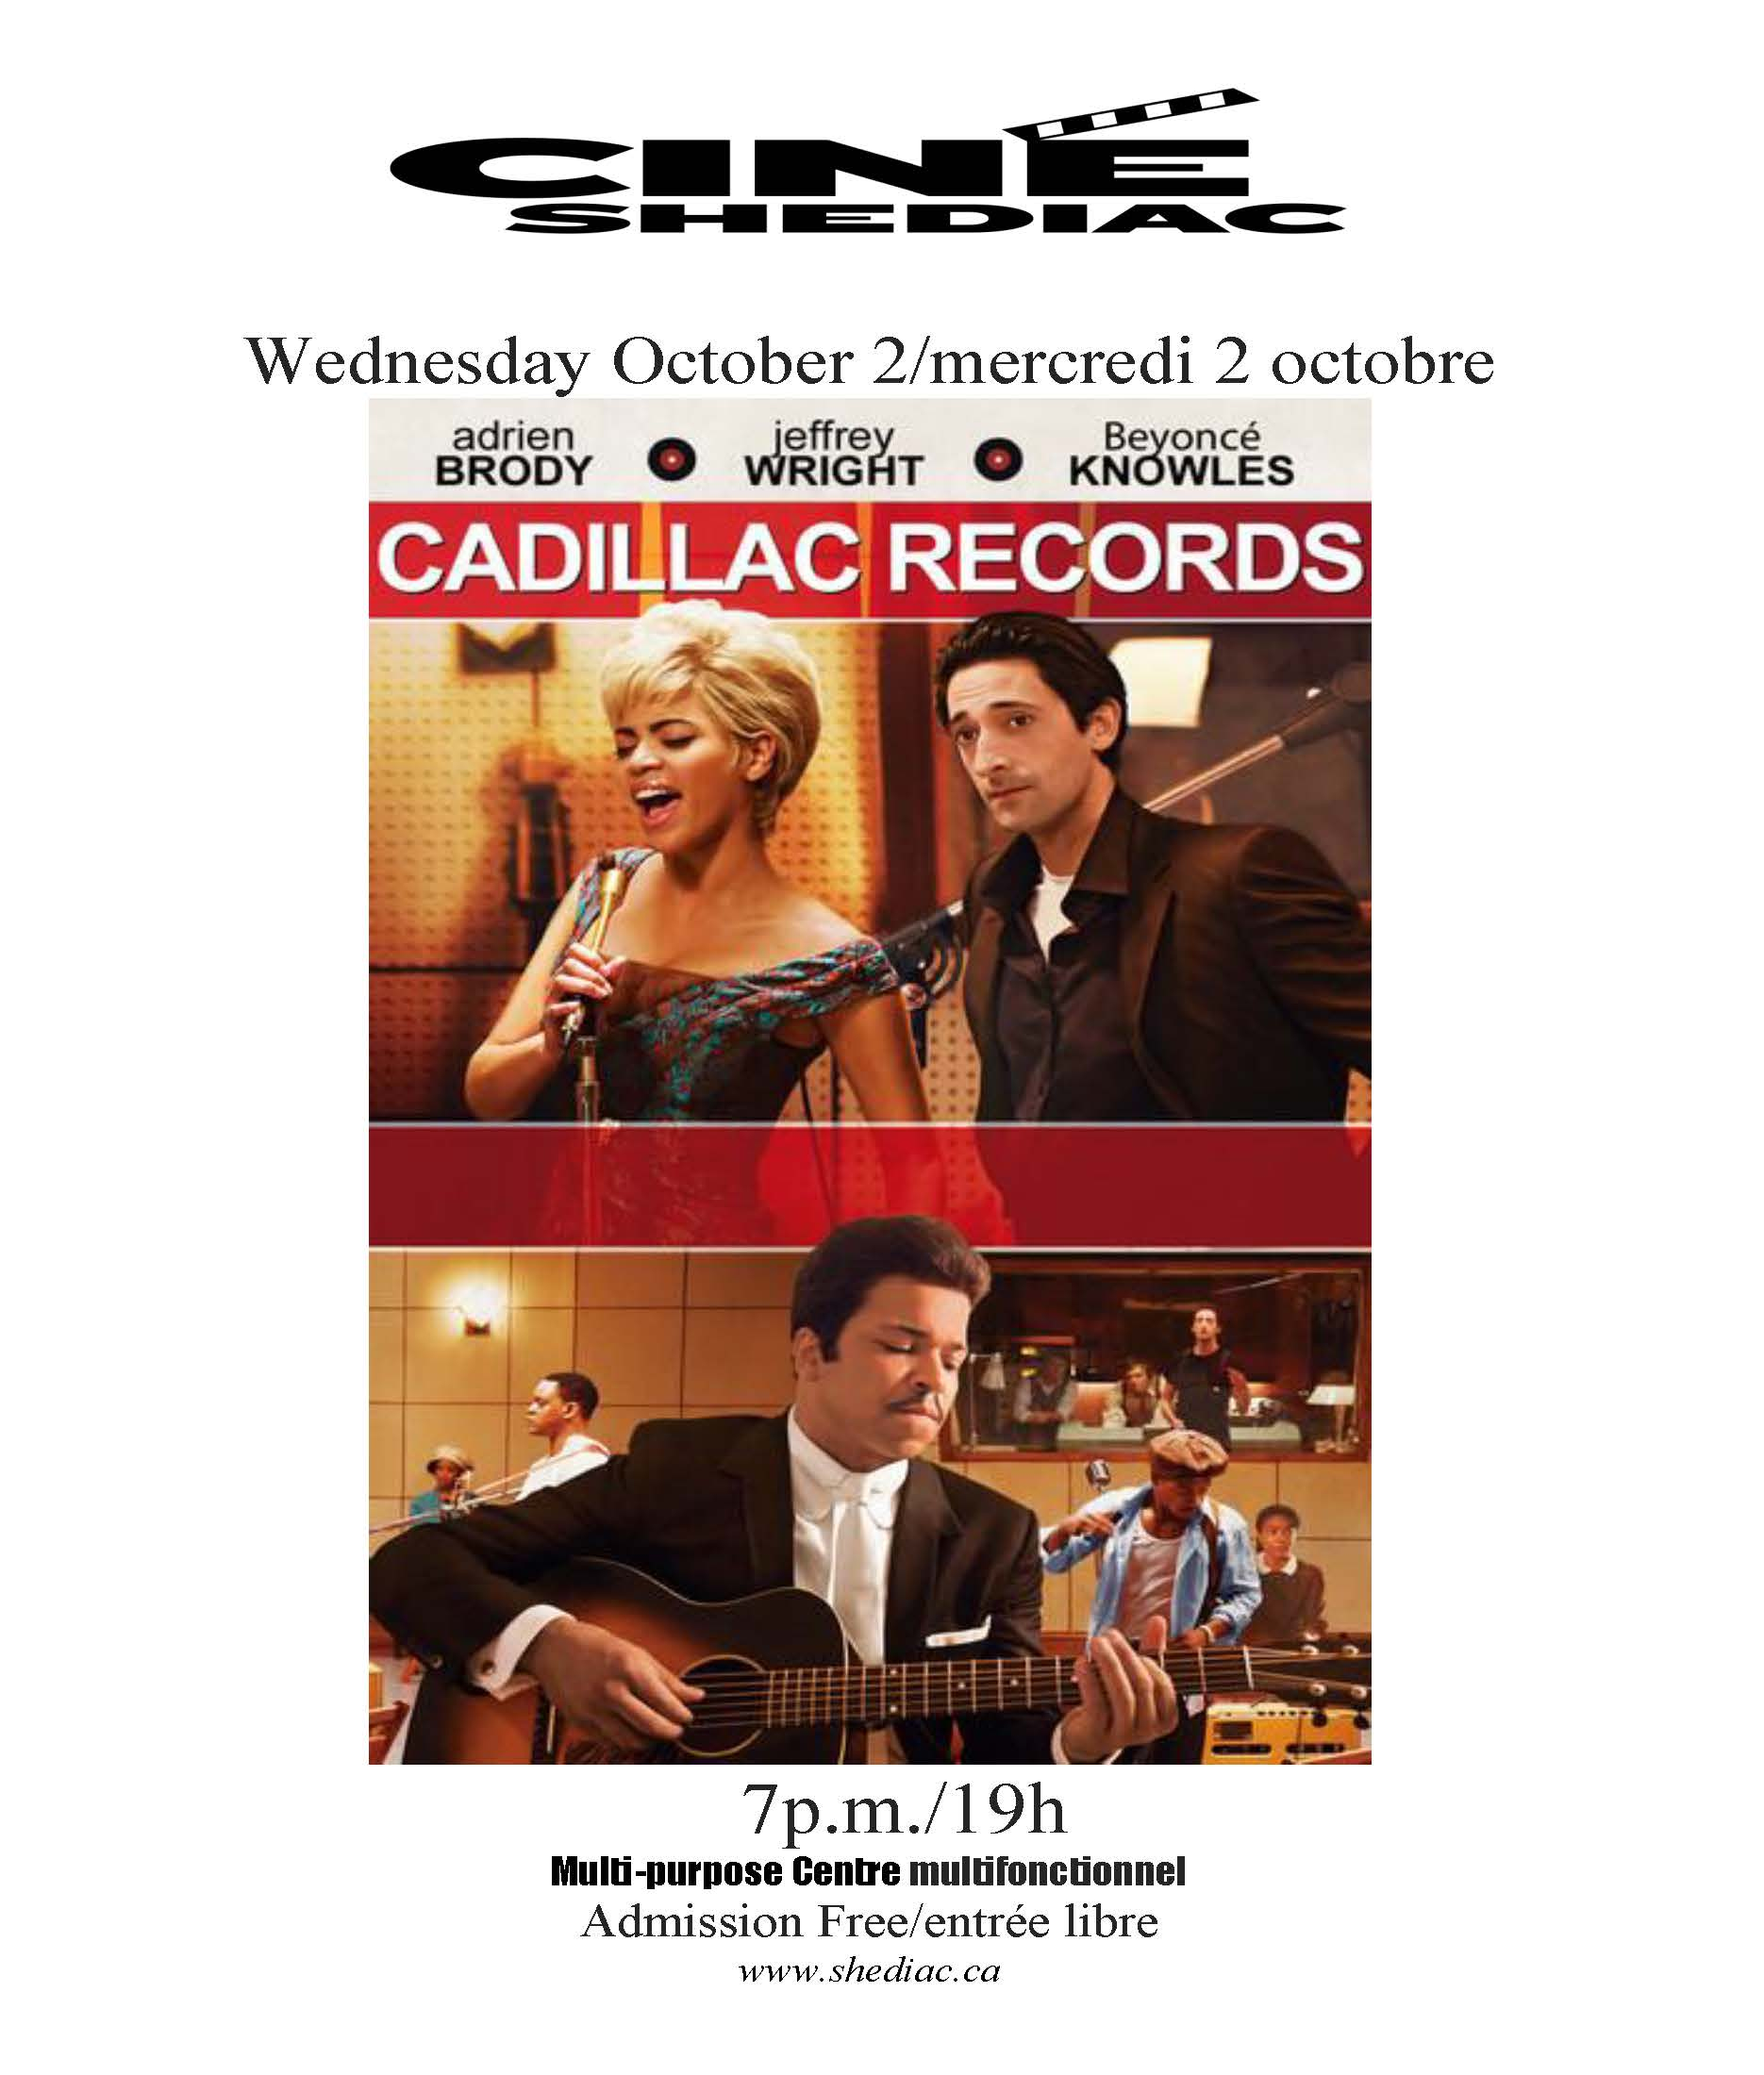 cadillac records 2 octobre